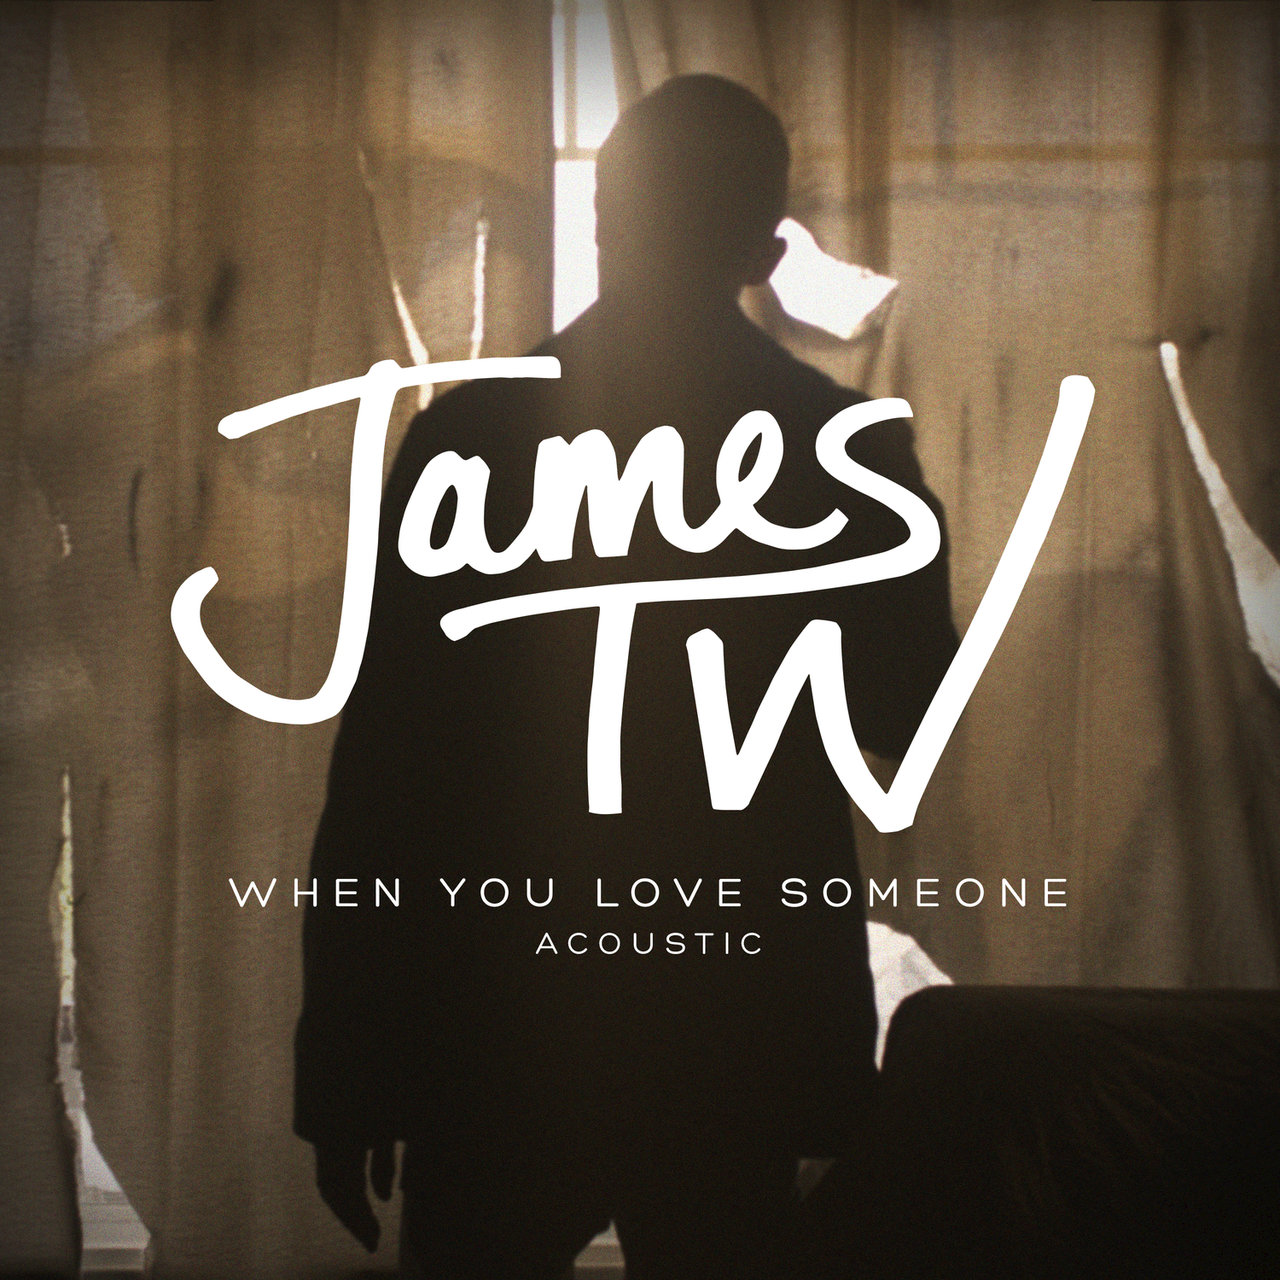 When You Love Someone (Acoustic)